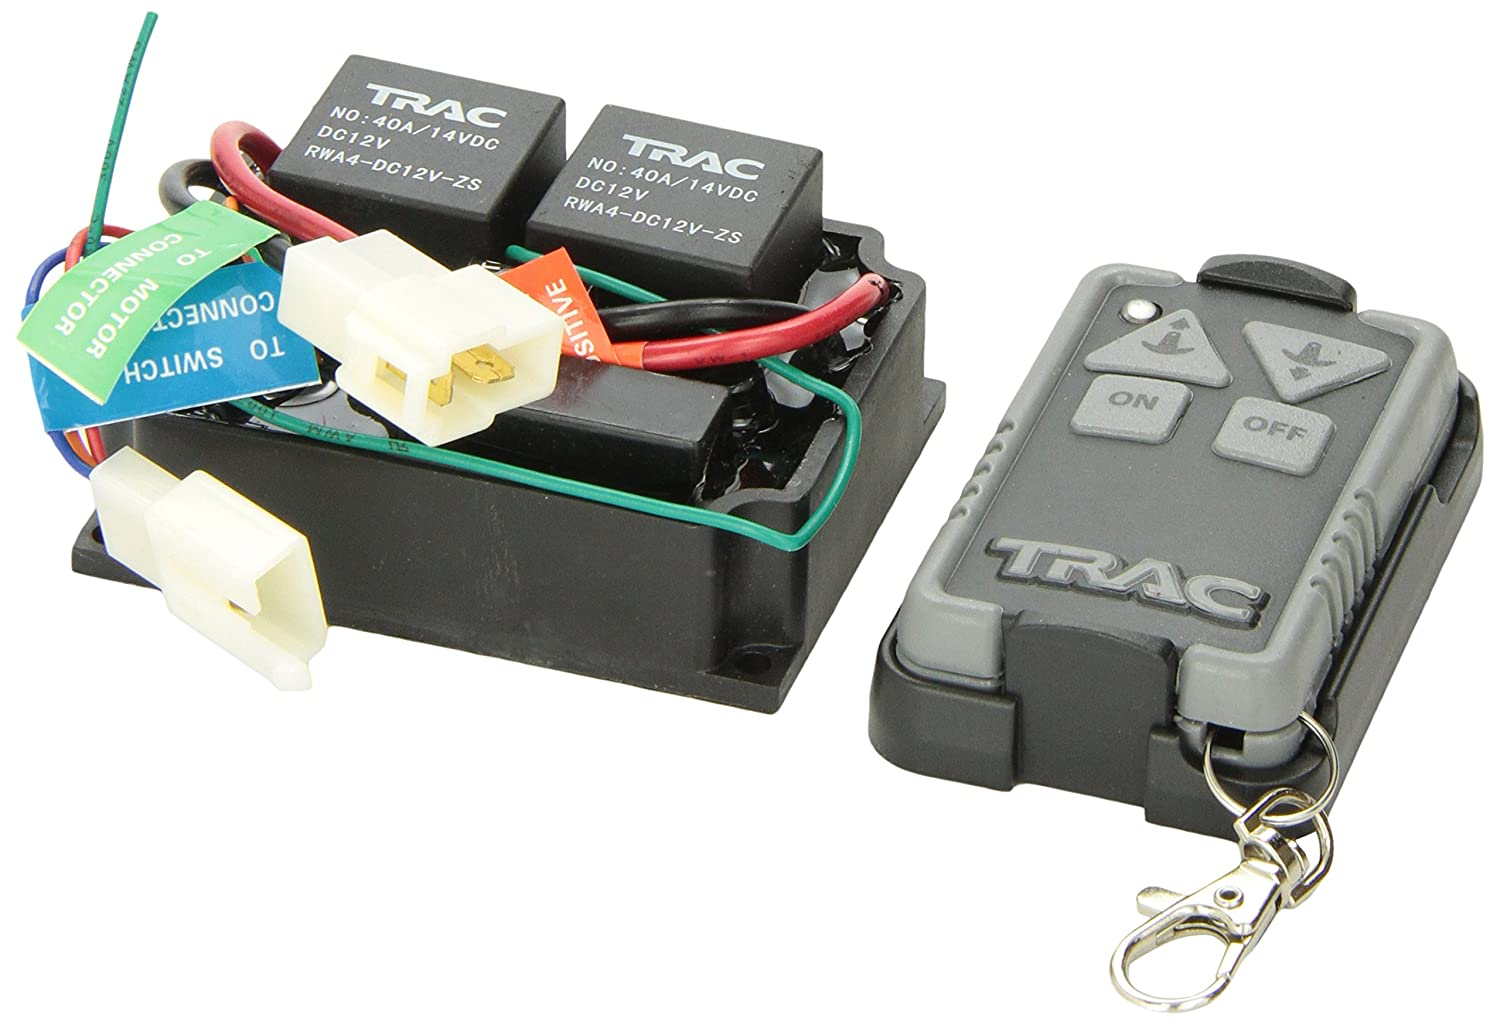 amazoncom trac outdoor products t10116 wireless remote kit automotive